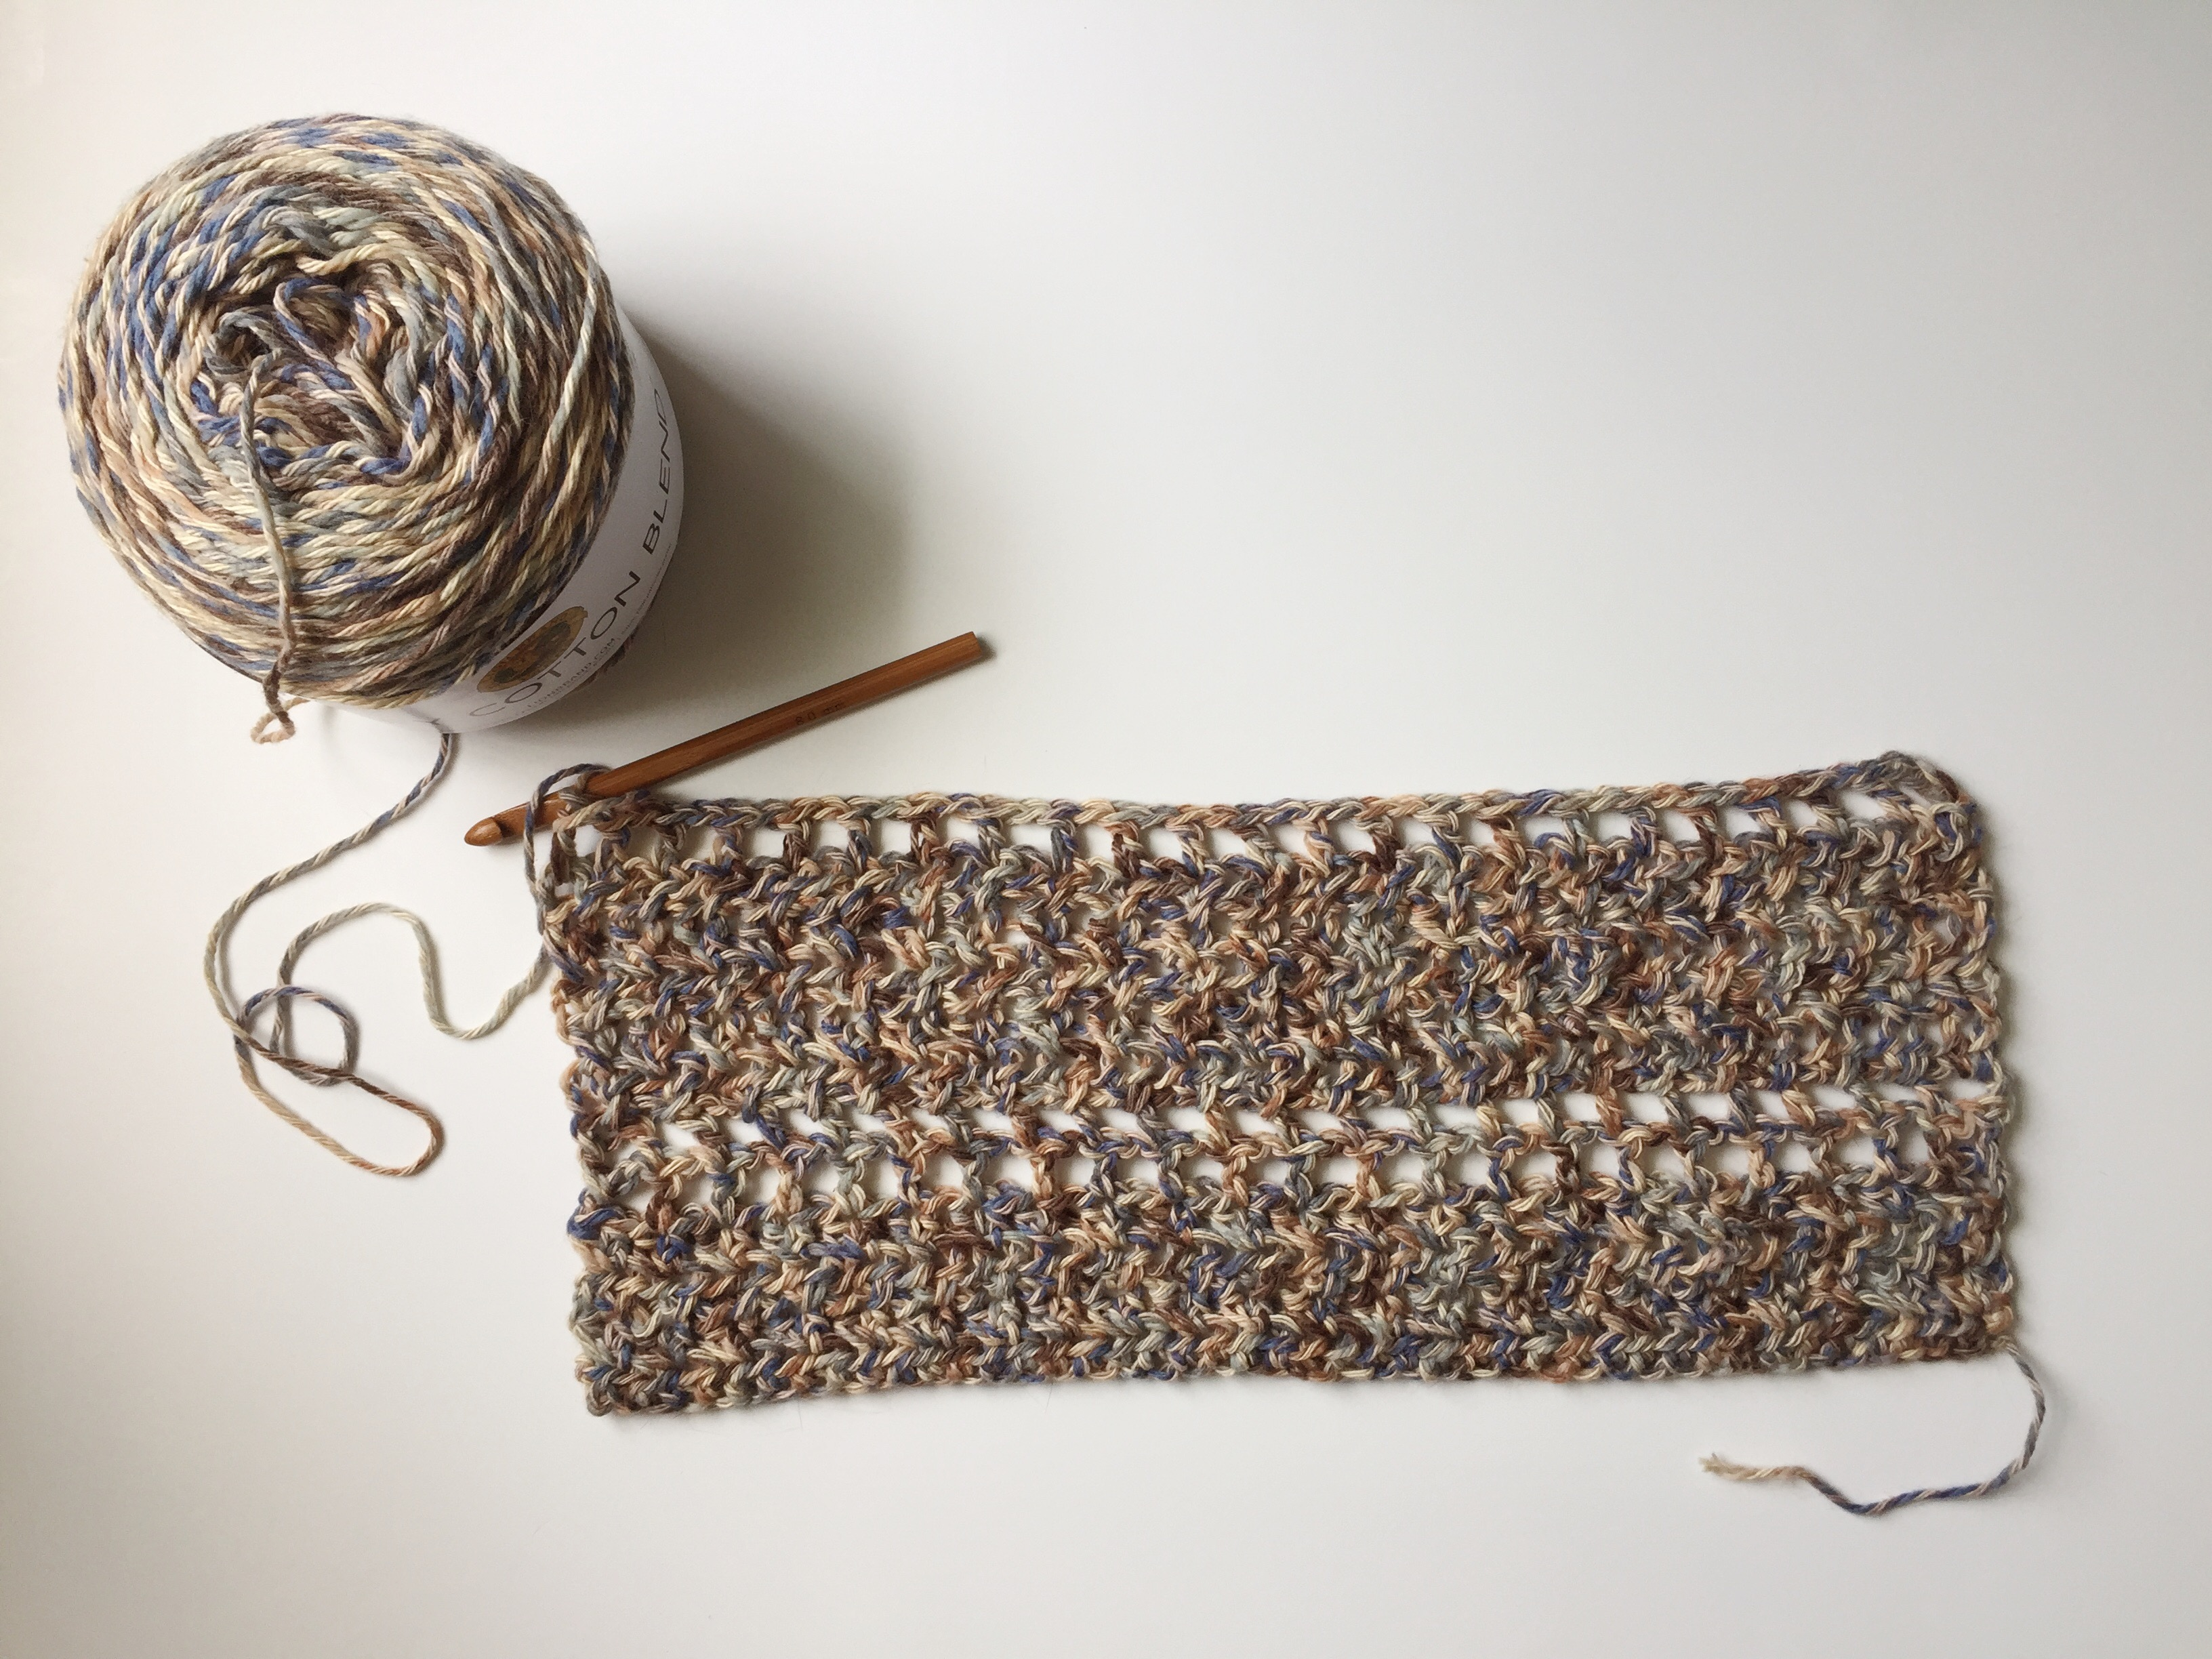 The start of a crochet shawl with neutral cotton yarn and a wooden crochet hook.